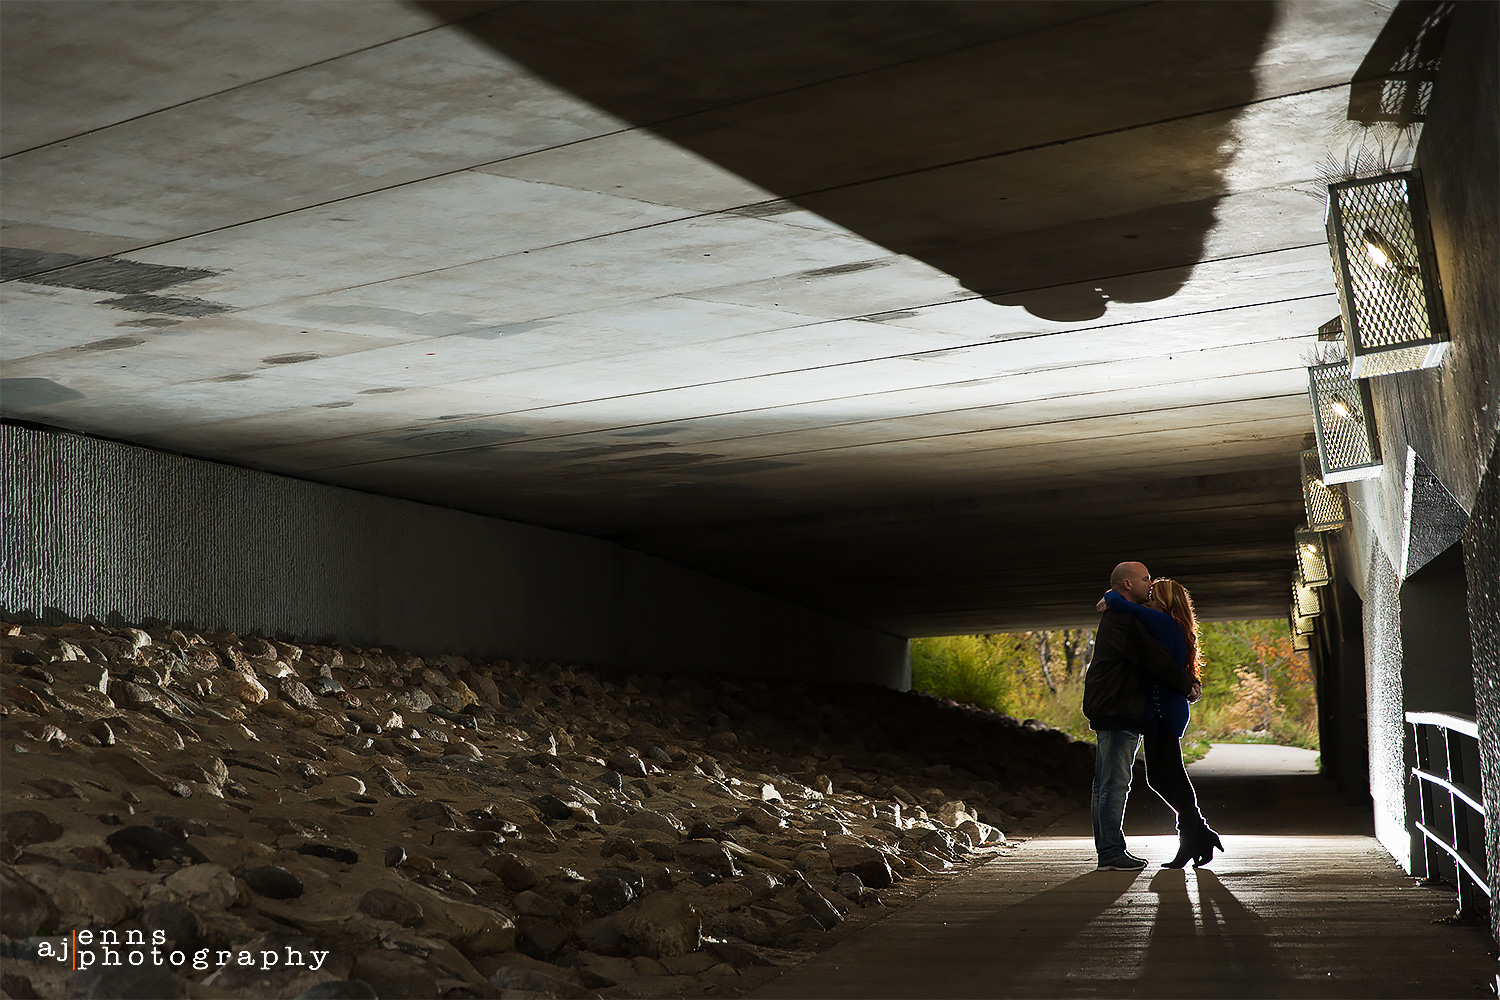 The couple embracing while being back lit under a portage avenue bridge